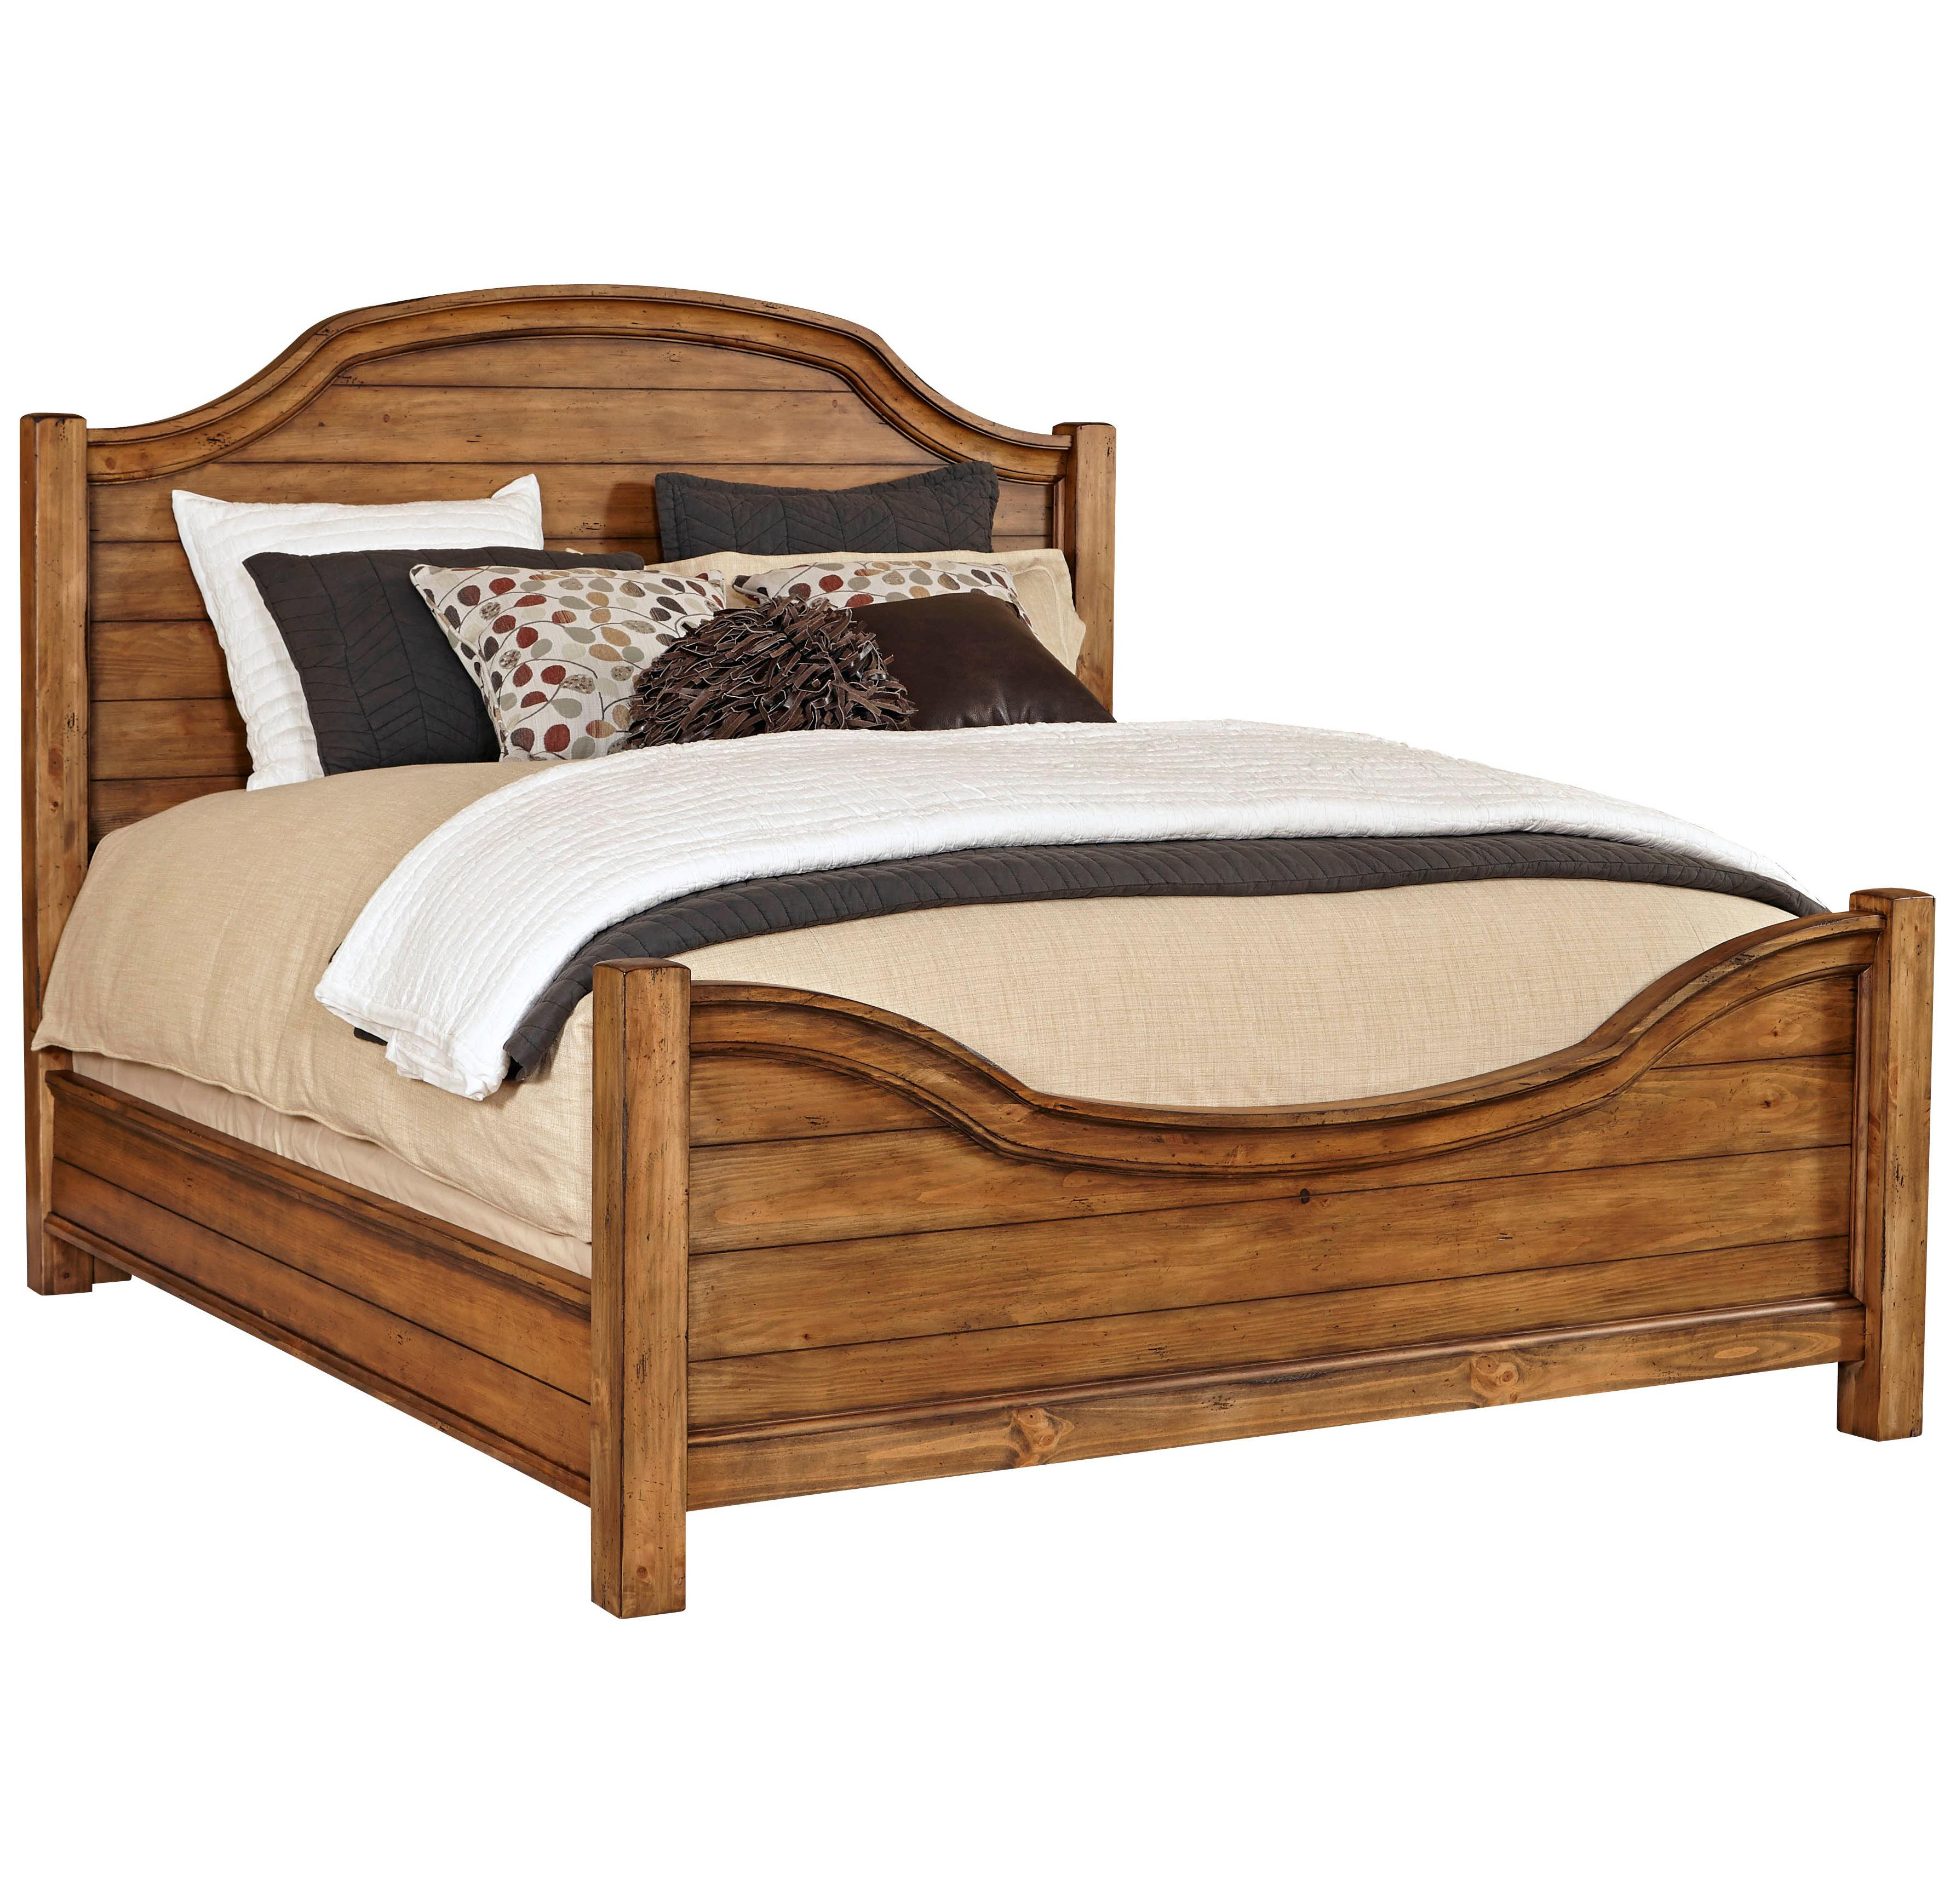 Broyhill Furniture Bethany Square King Panel Bed - Item Number: 4930-258+259+450